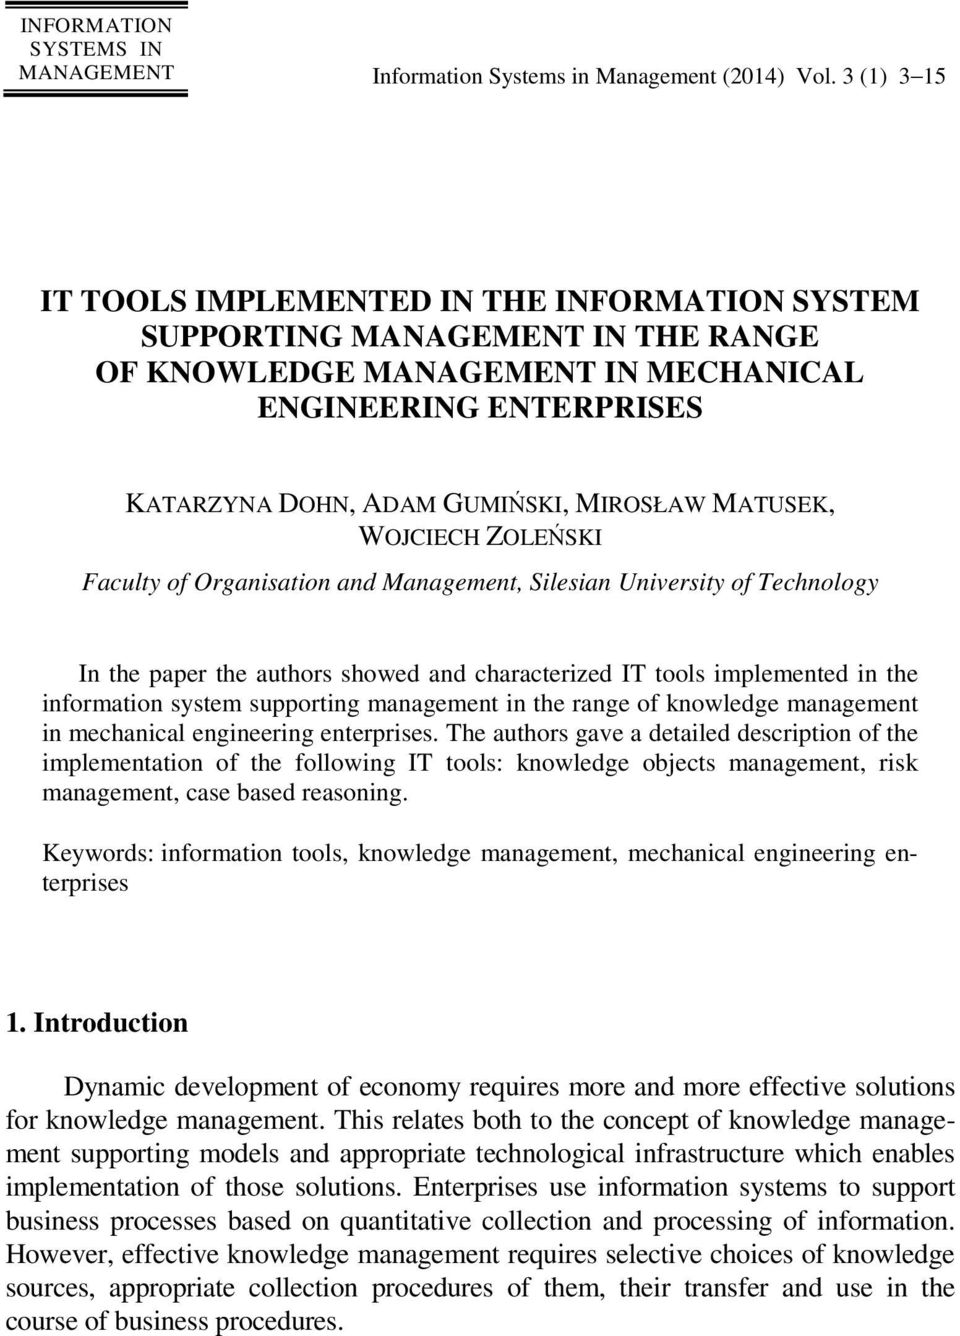 MATUSEK, WOJCIECH ZOLEŃSKI Faculty of Organisation and Management, Silesian University of Technology In the paper the authors showed and characterized IT tools implemented in the information system